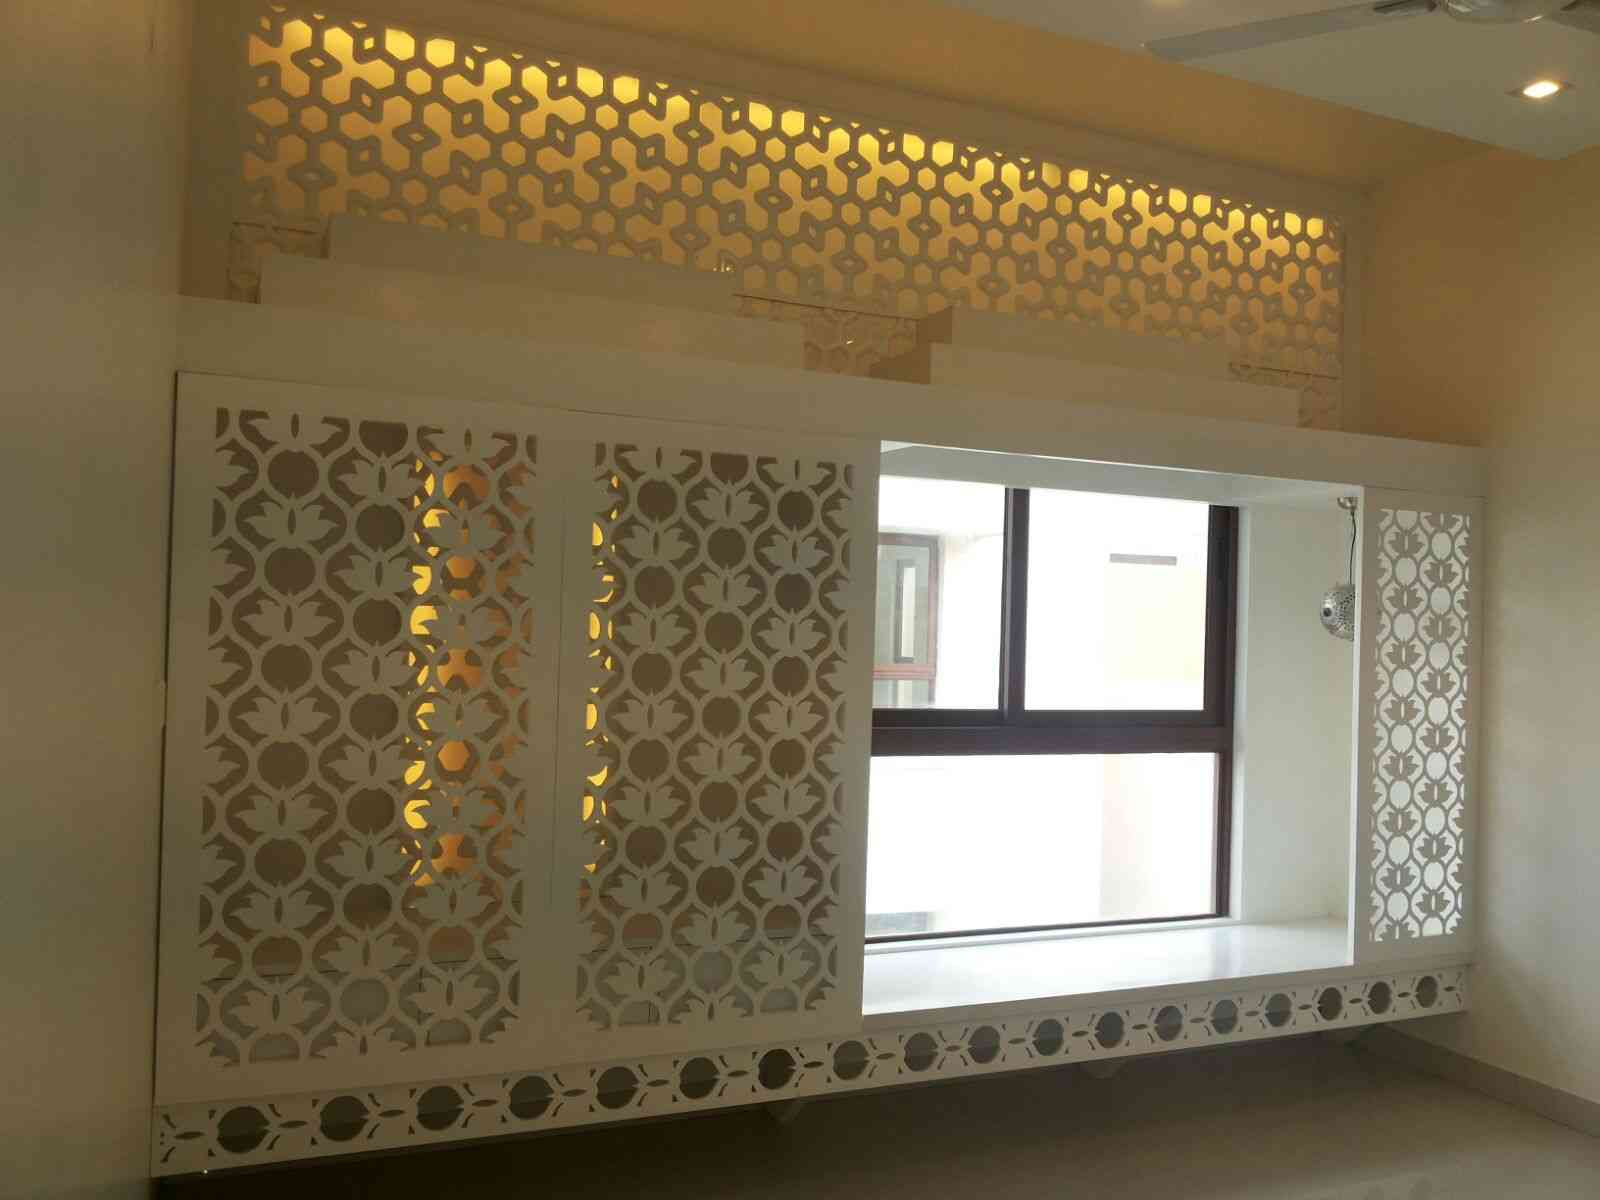 Jali partition designs jaali pattern jali partition for Interior jali designs